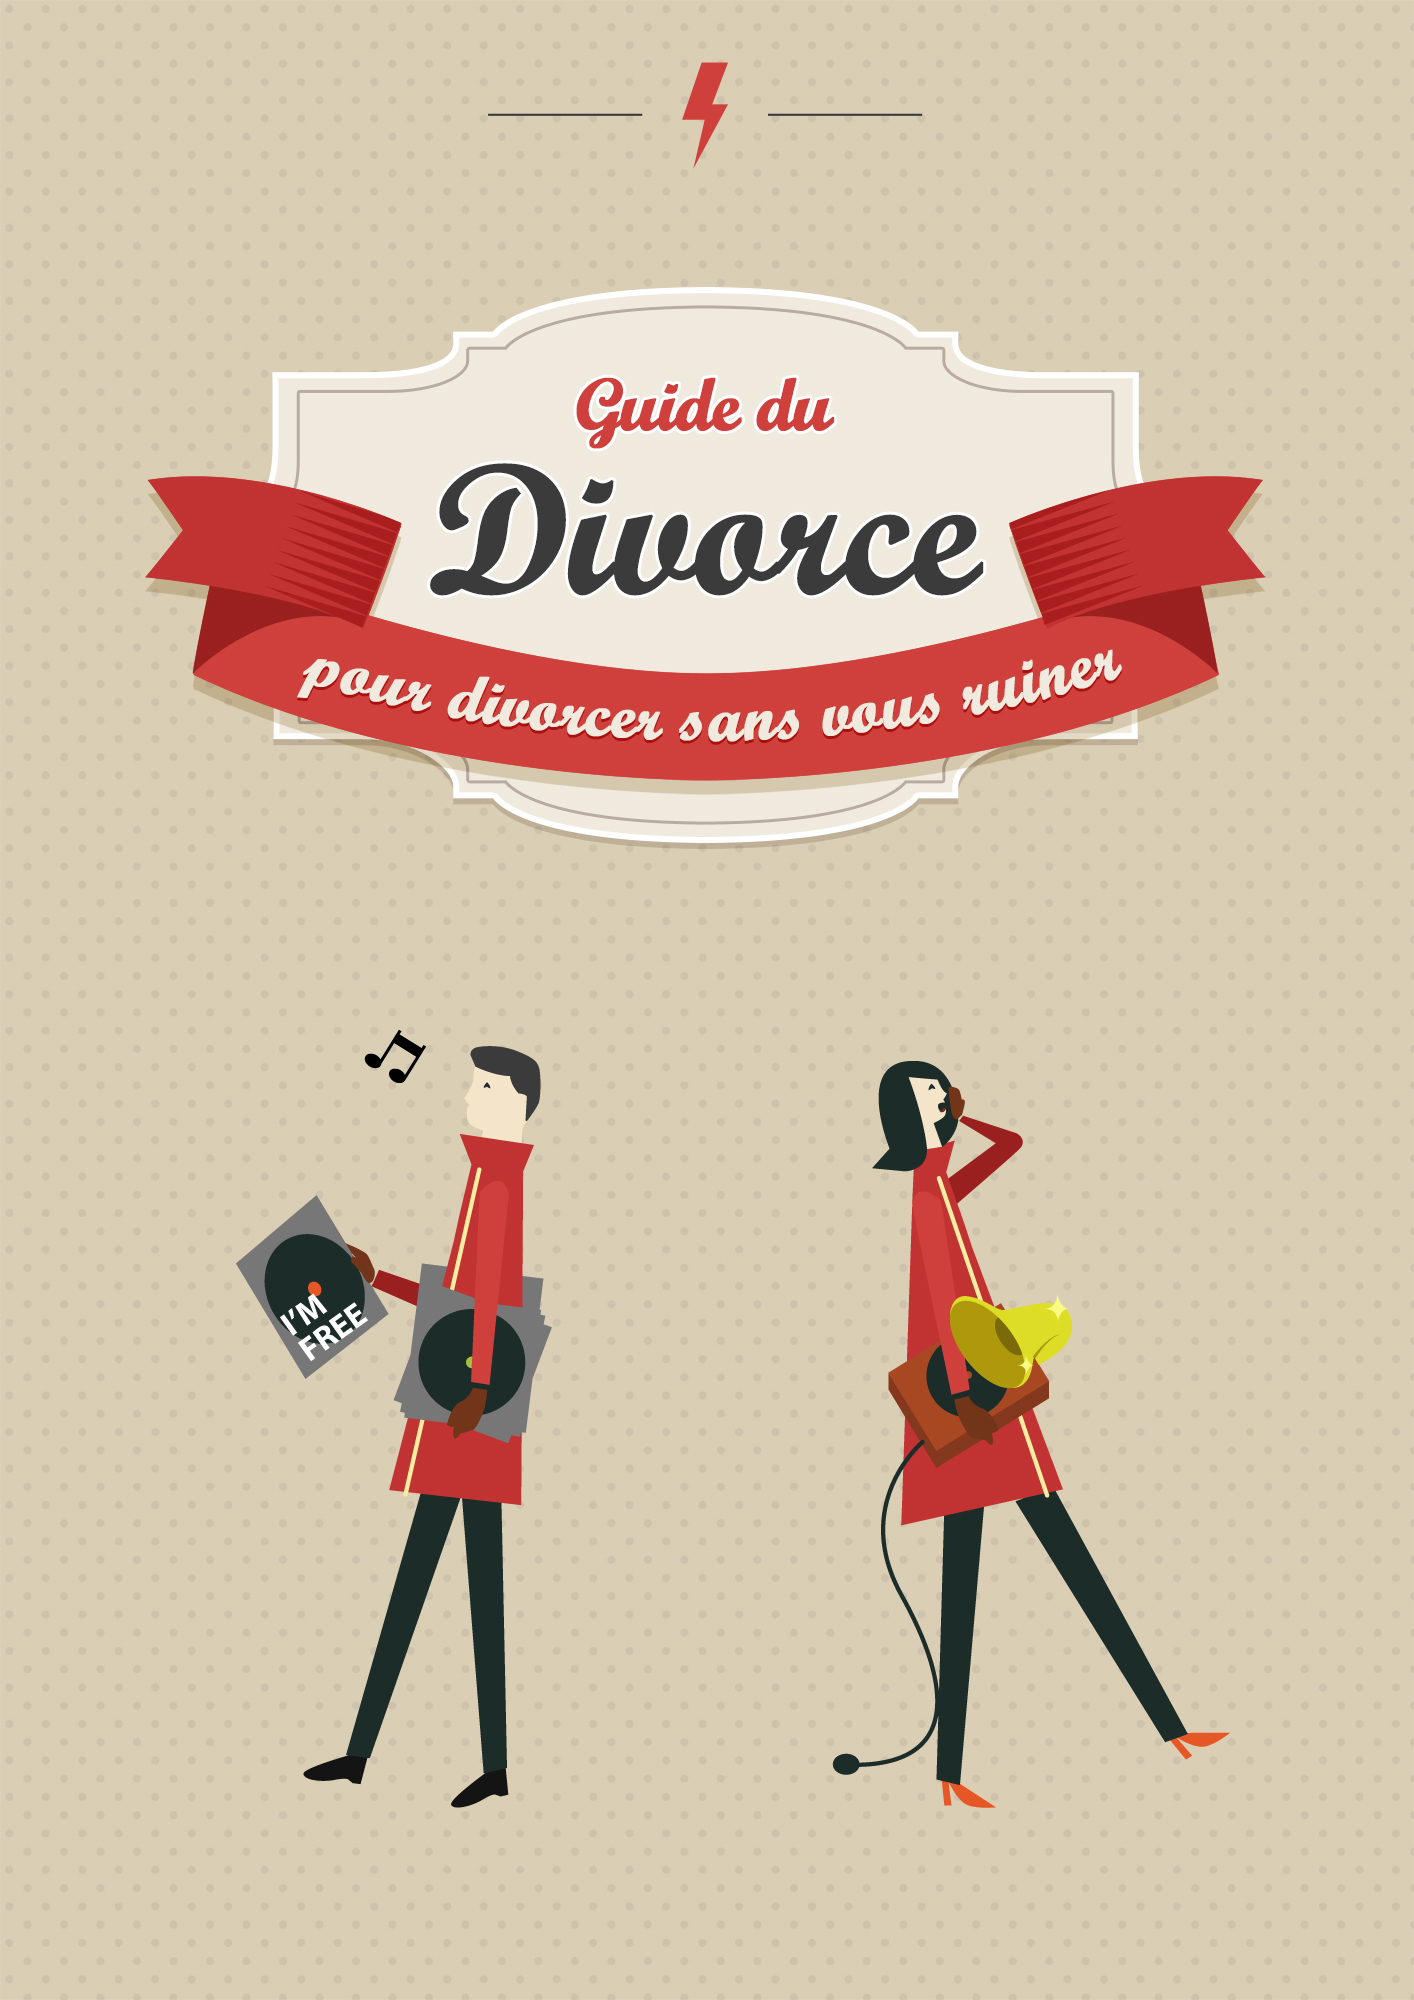 Guide du Divorce